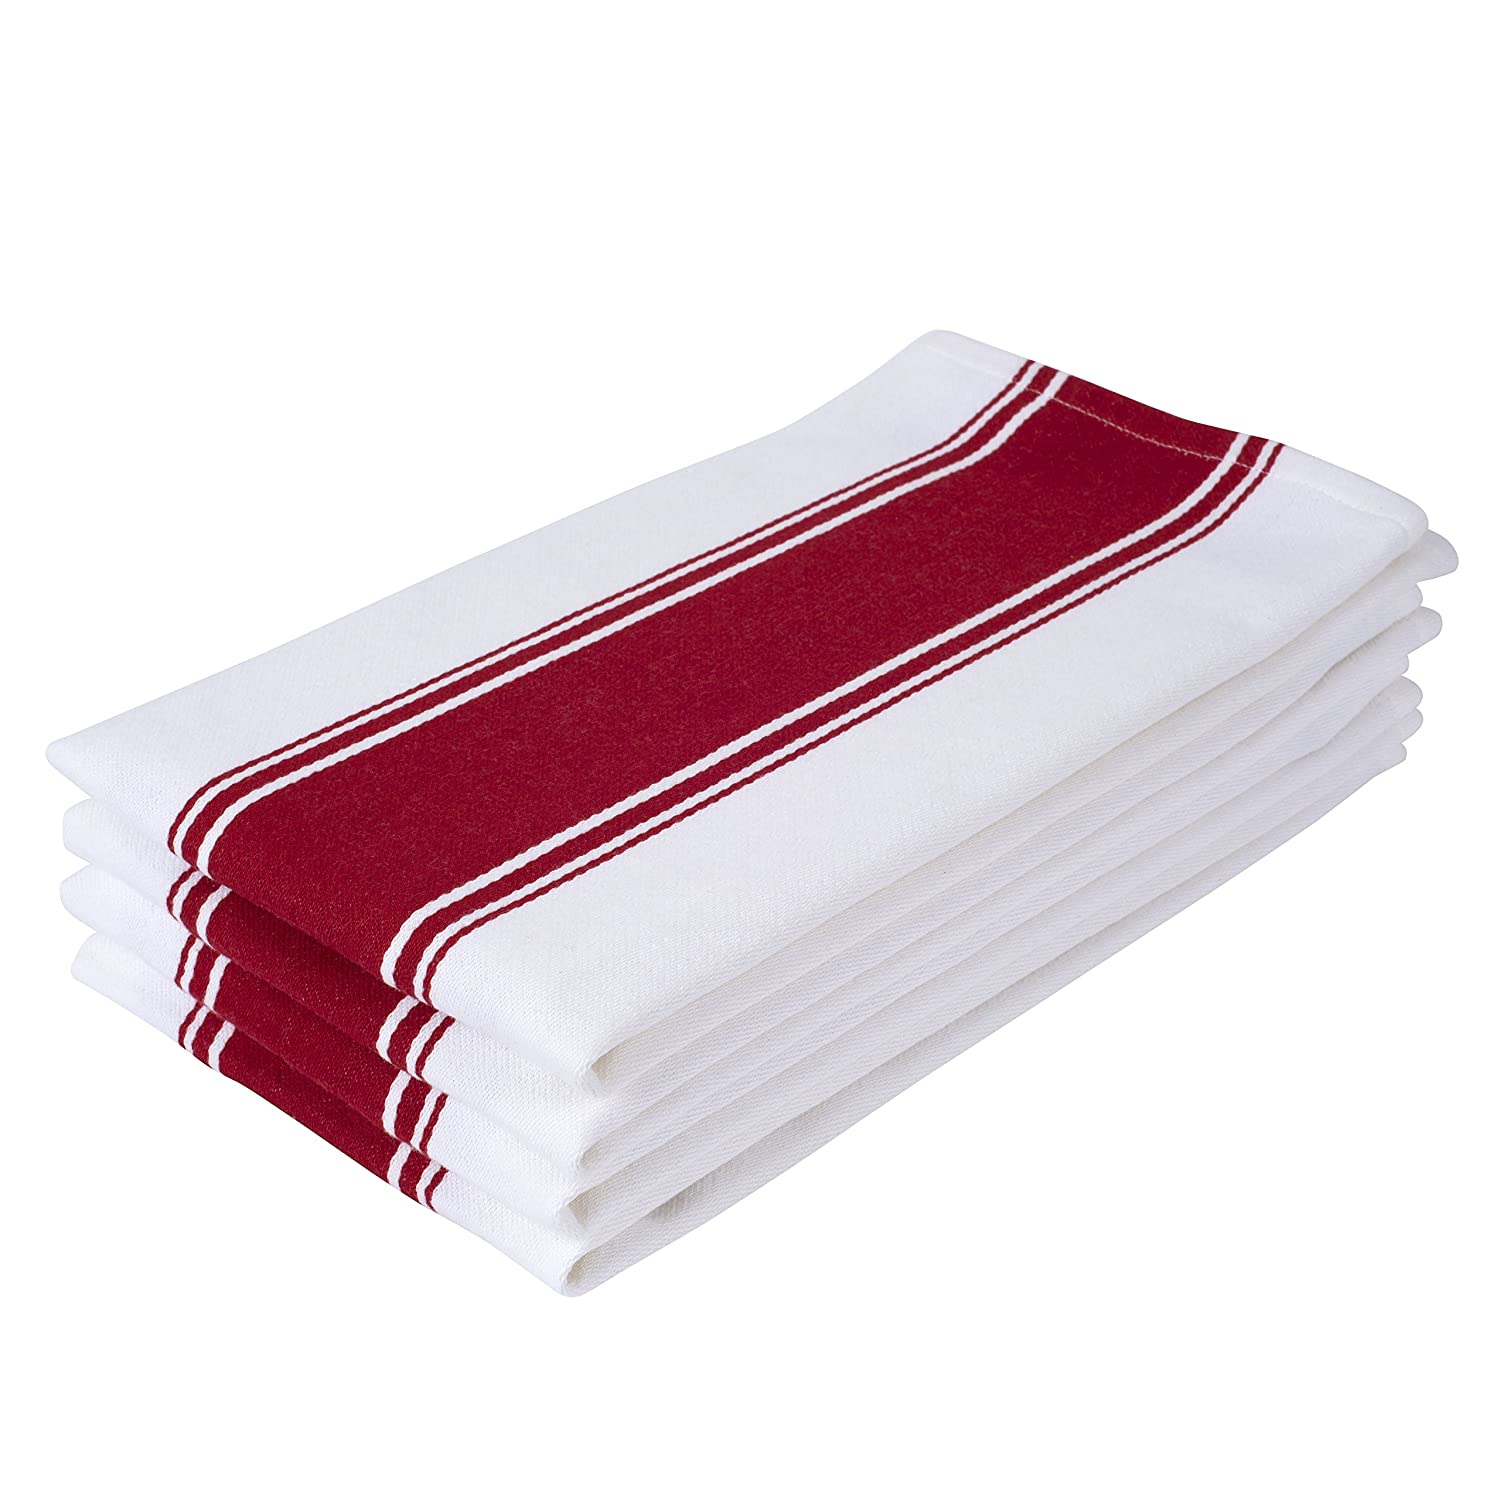 Vintage White & Red Striped Dish Towels - Set of 4